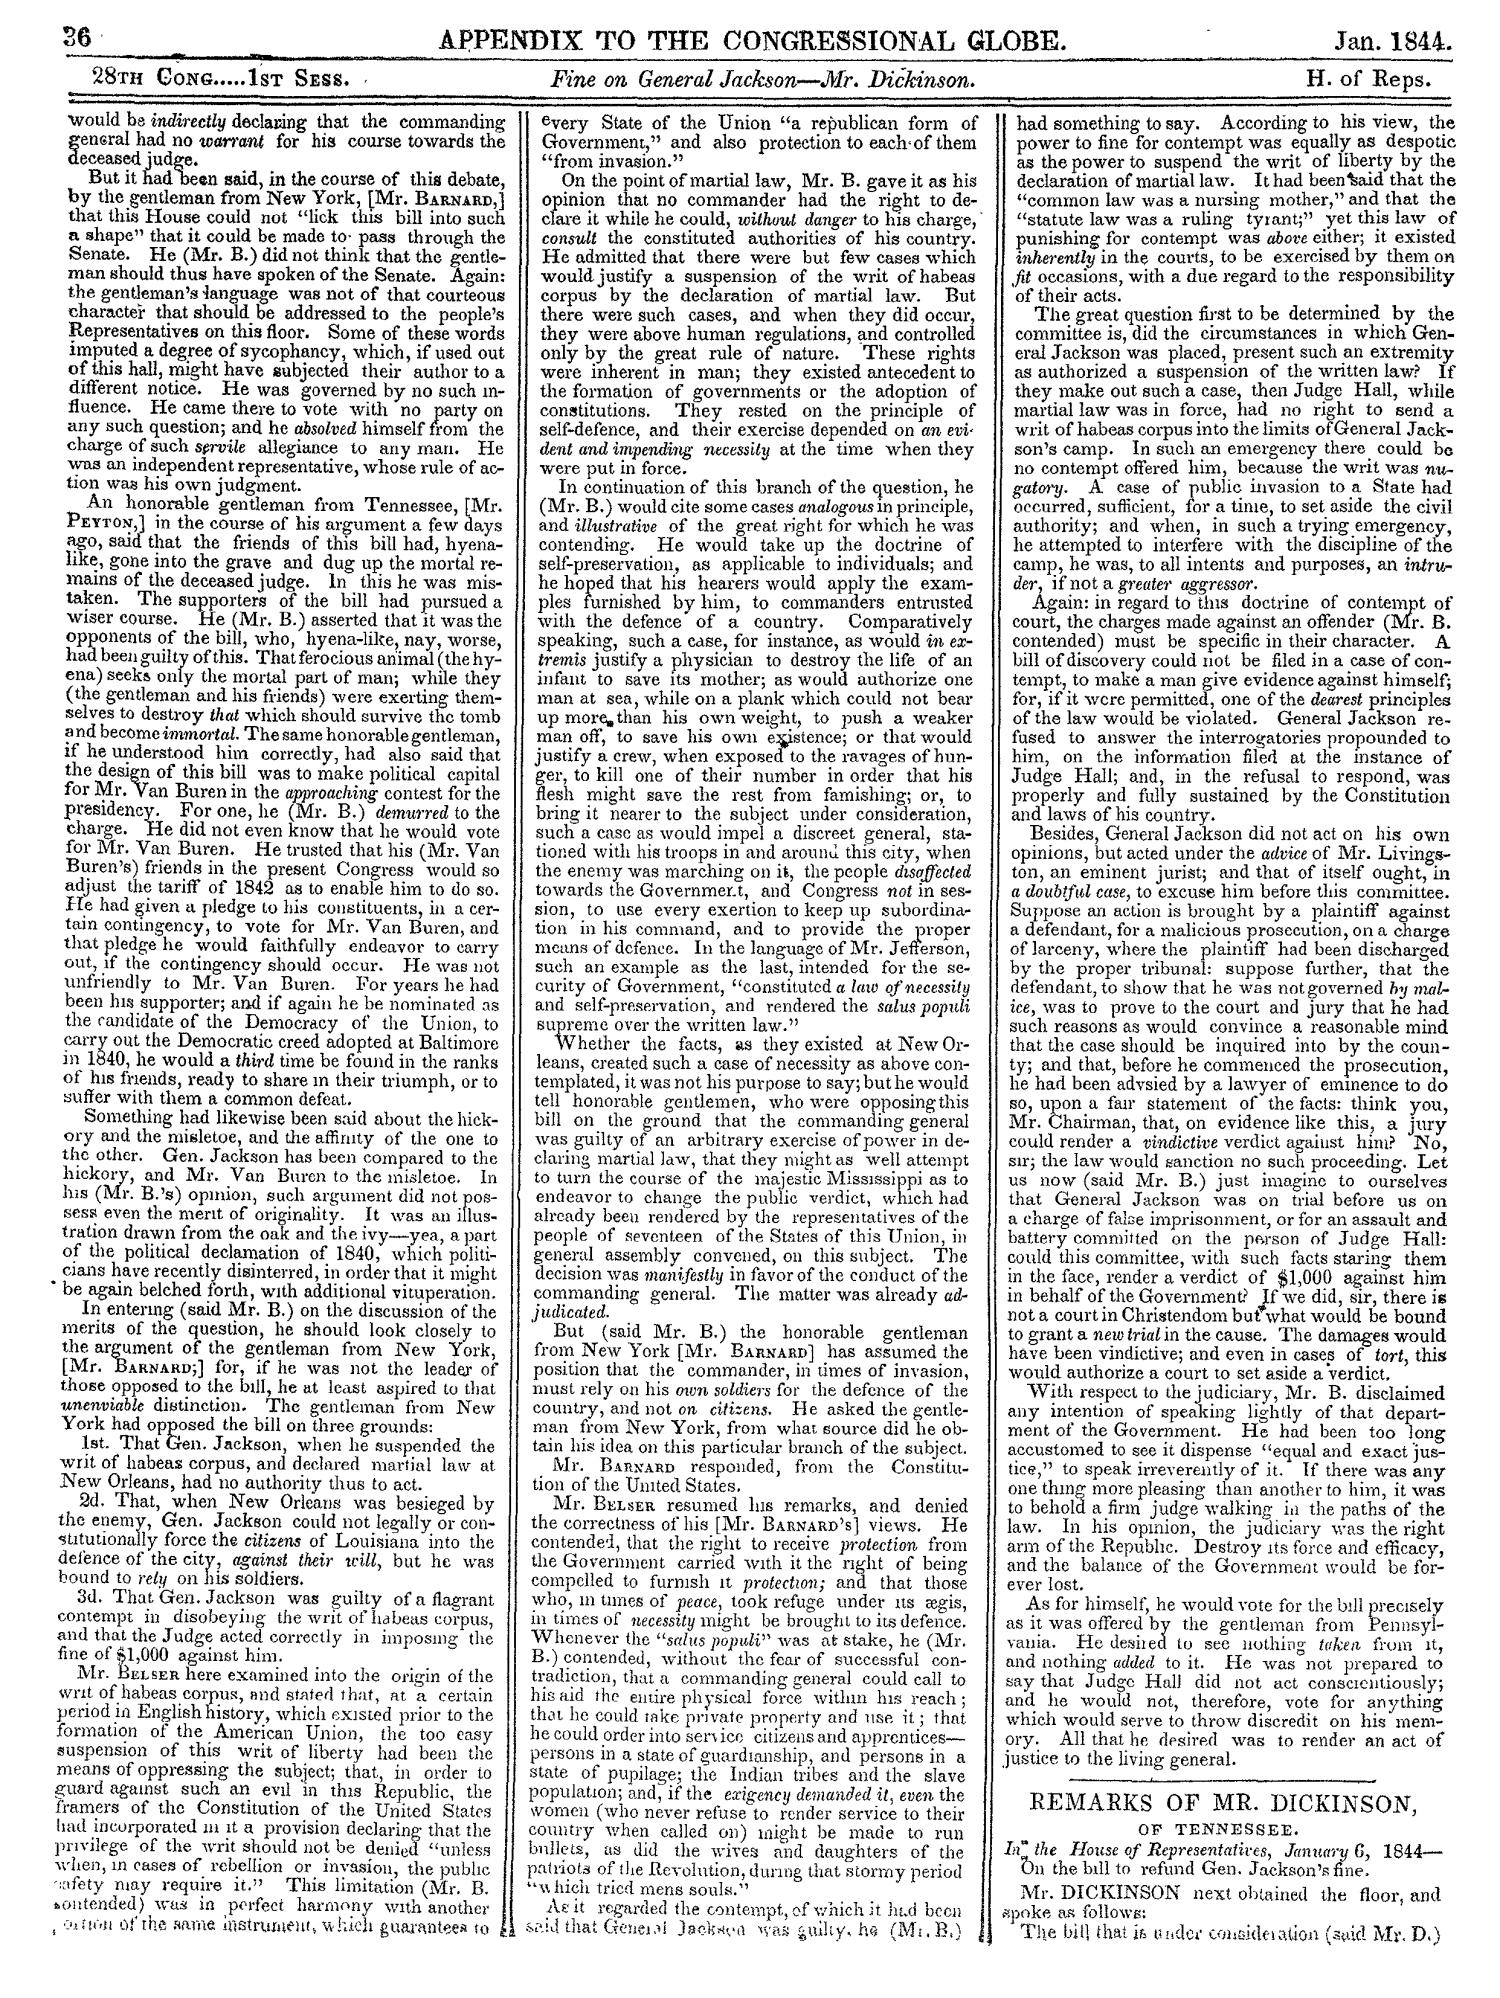 The Congressional Globe, Volume 13, Part 2: Twenty-Eighth Congress, First Session                                                                                                      36